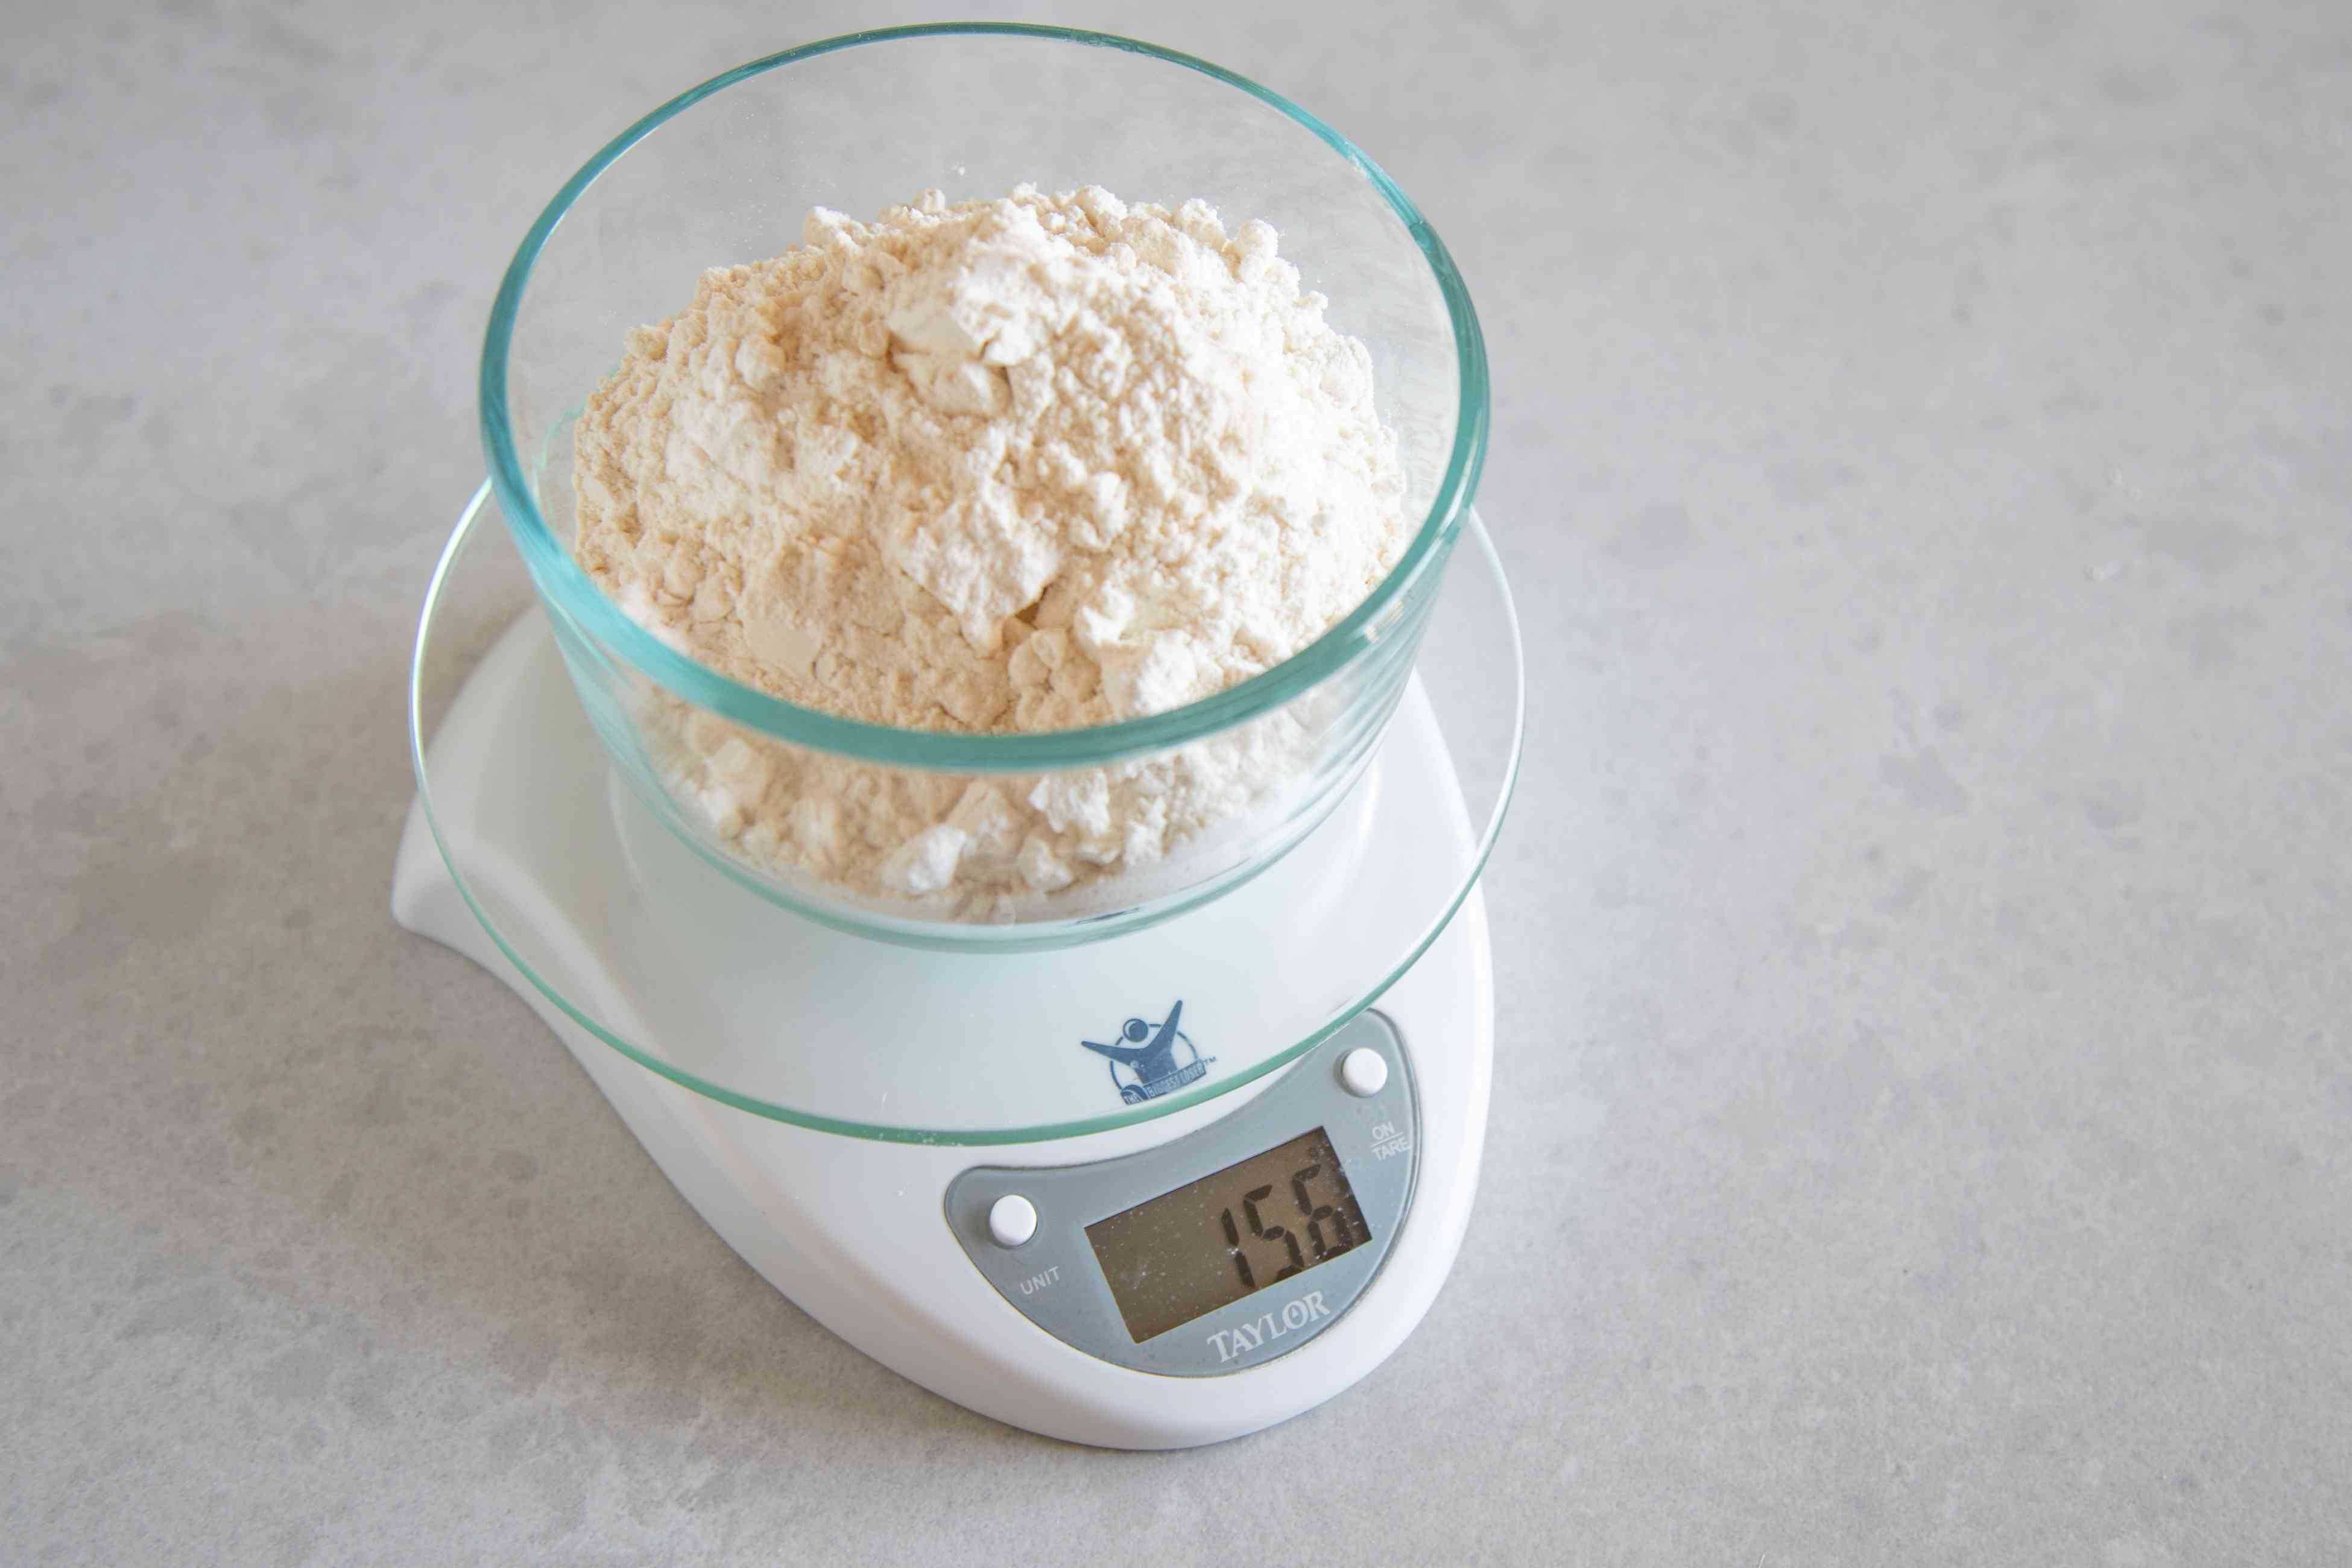 A glass bowl on a kitchen scale to show the best way to measure flour.